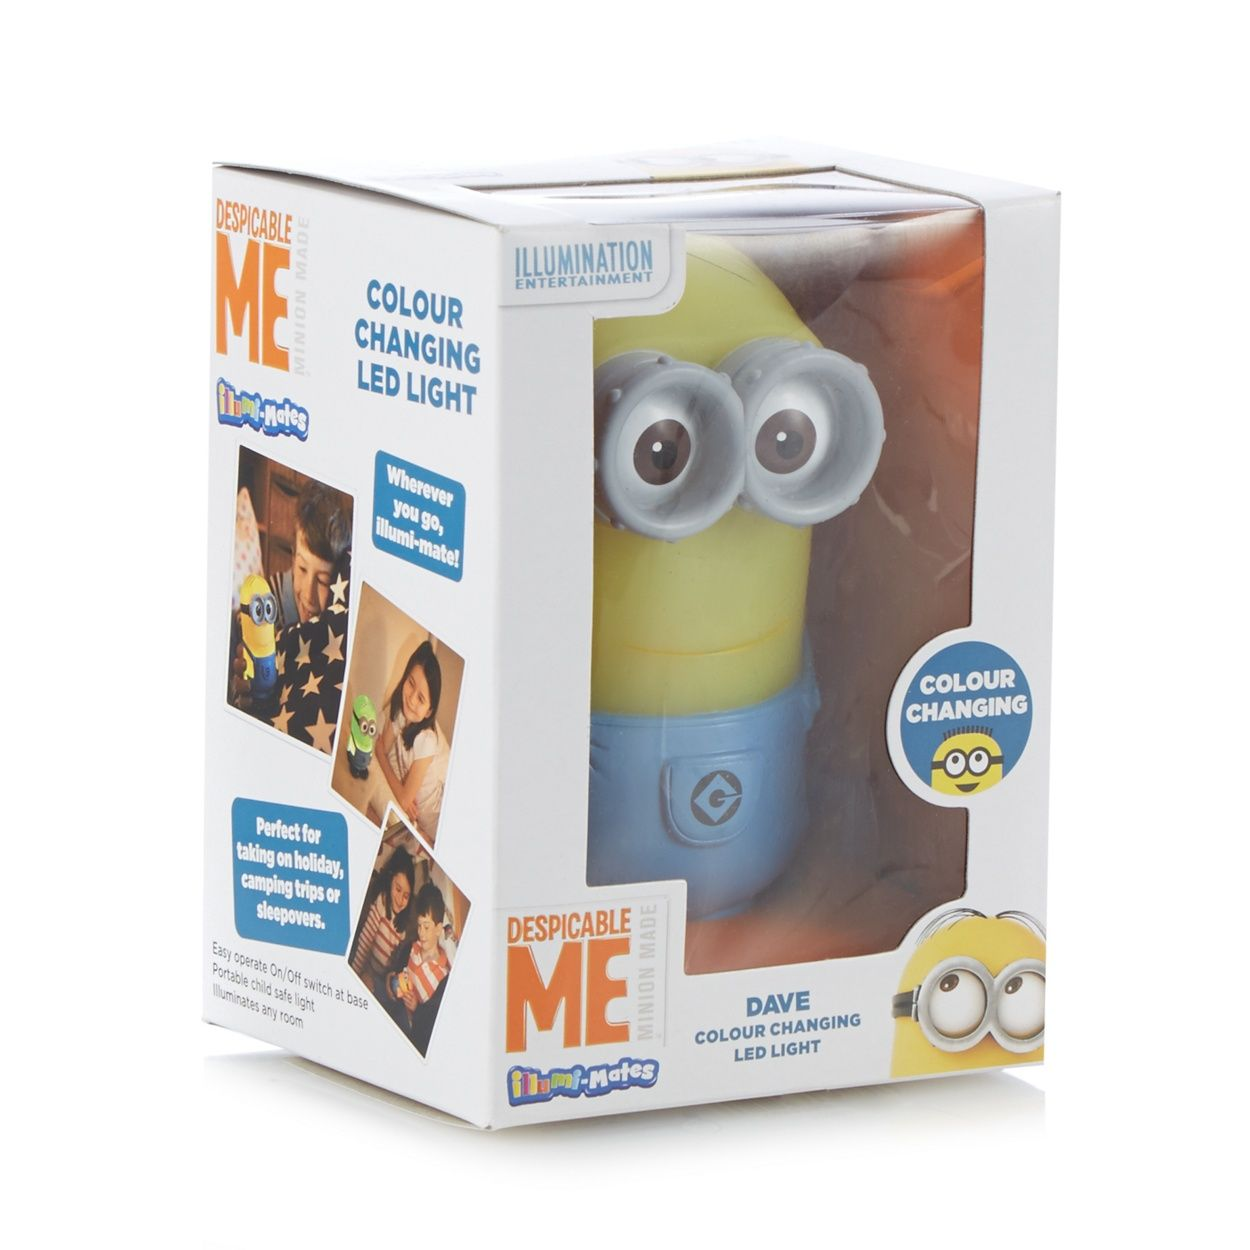 Childrens colour changing lights - If Your Little One Is A Fan Of Despicable Me They Ll Love This Portable Minion Child Safe Light Its Comforting And Automatically Colour Changing Led Light